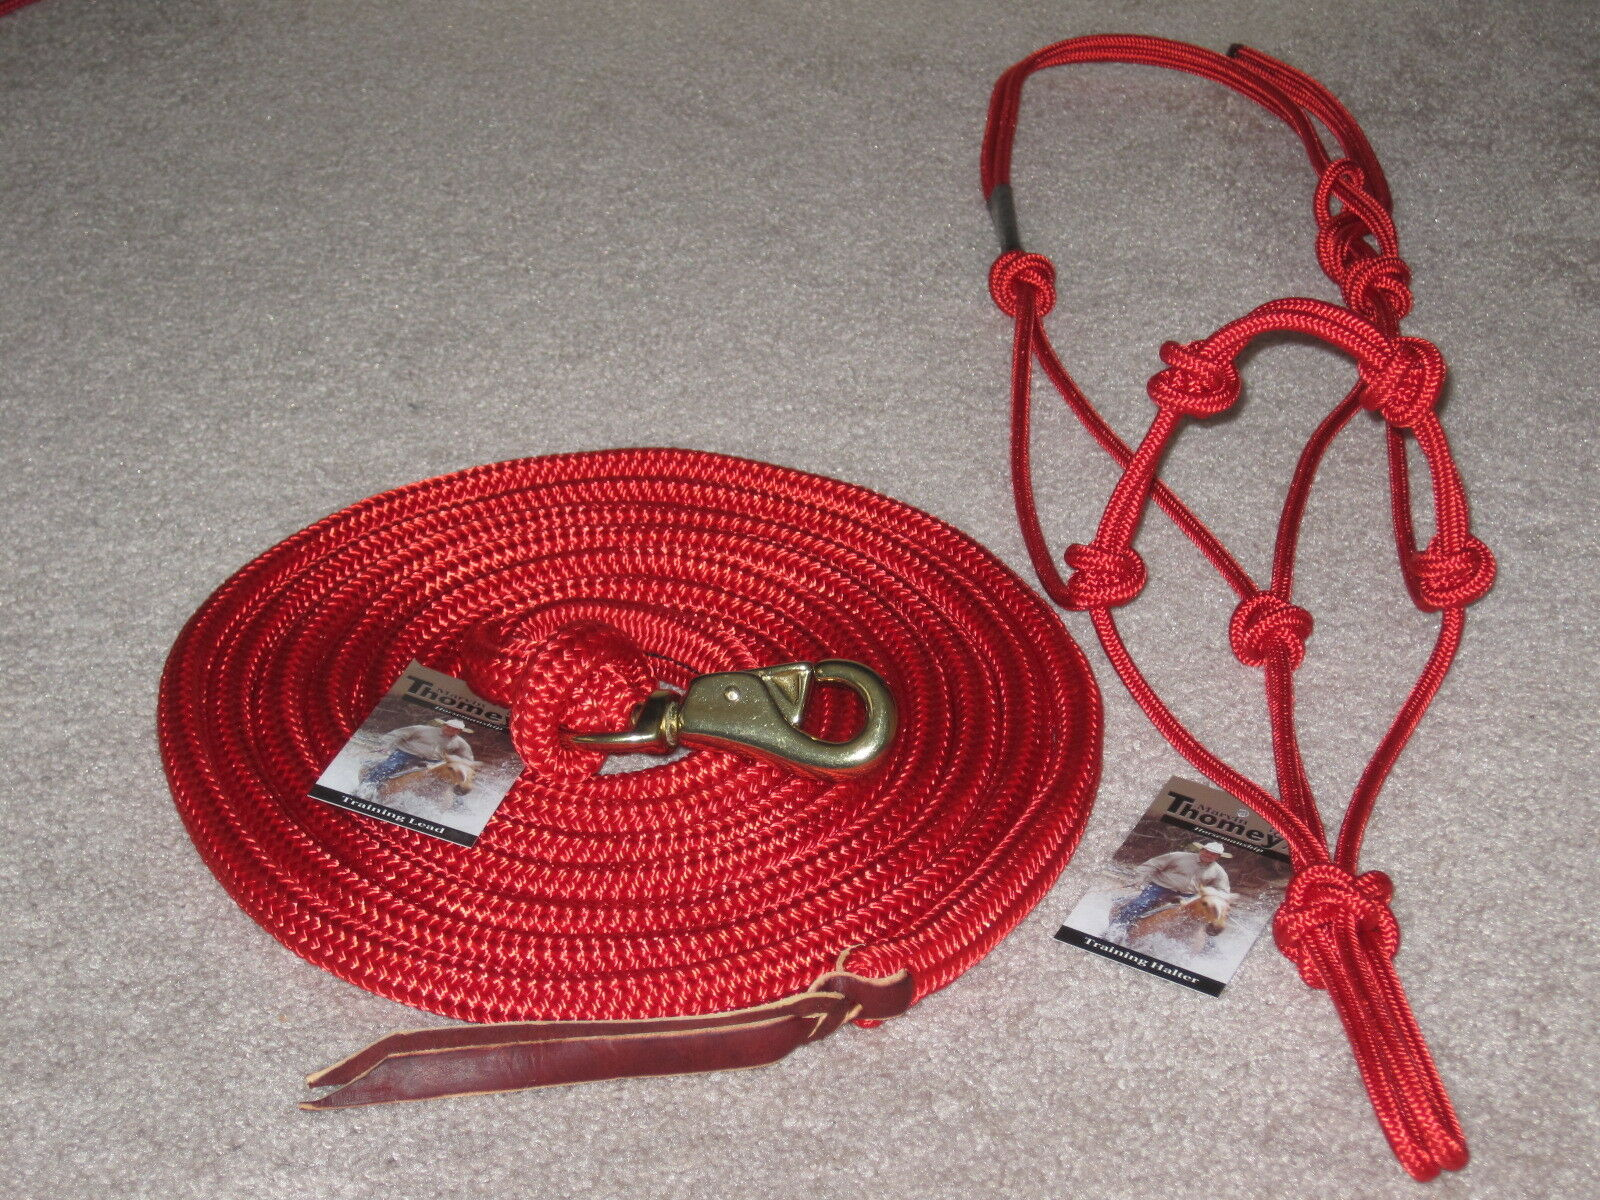 THOMEY NATURAL HORSE TRAINING HALTER  & 14FT. LEAD ROPEGREAT FOR GROUNDWORK RED  for your style of play at the cheapest prices